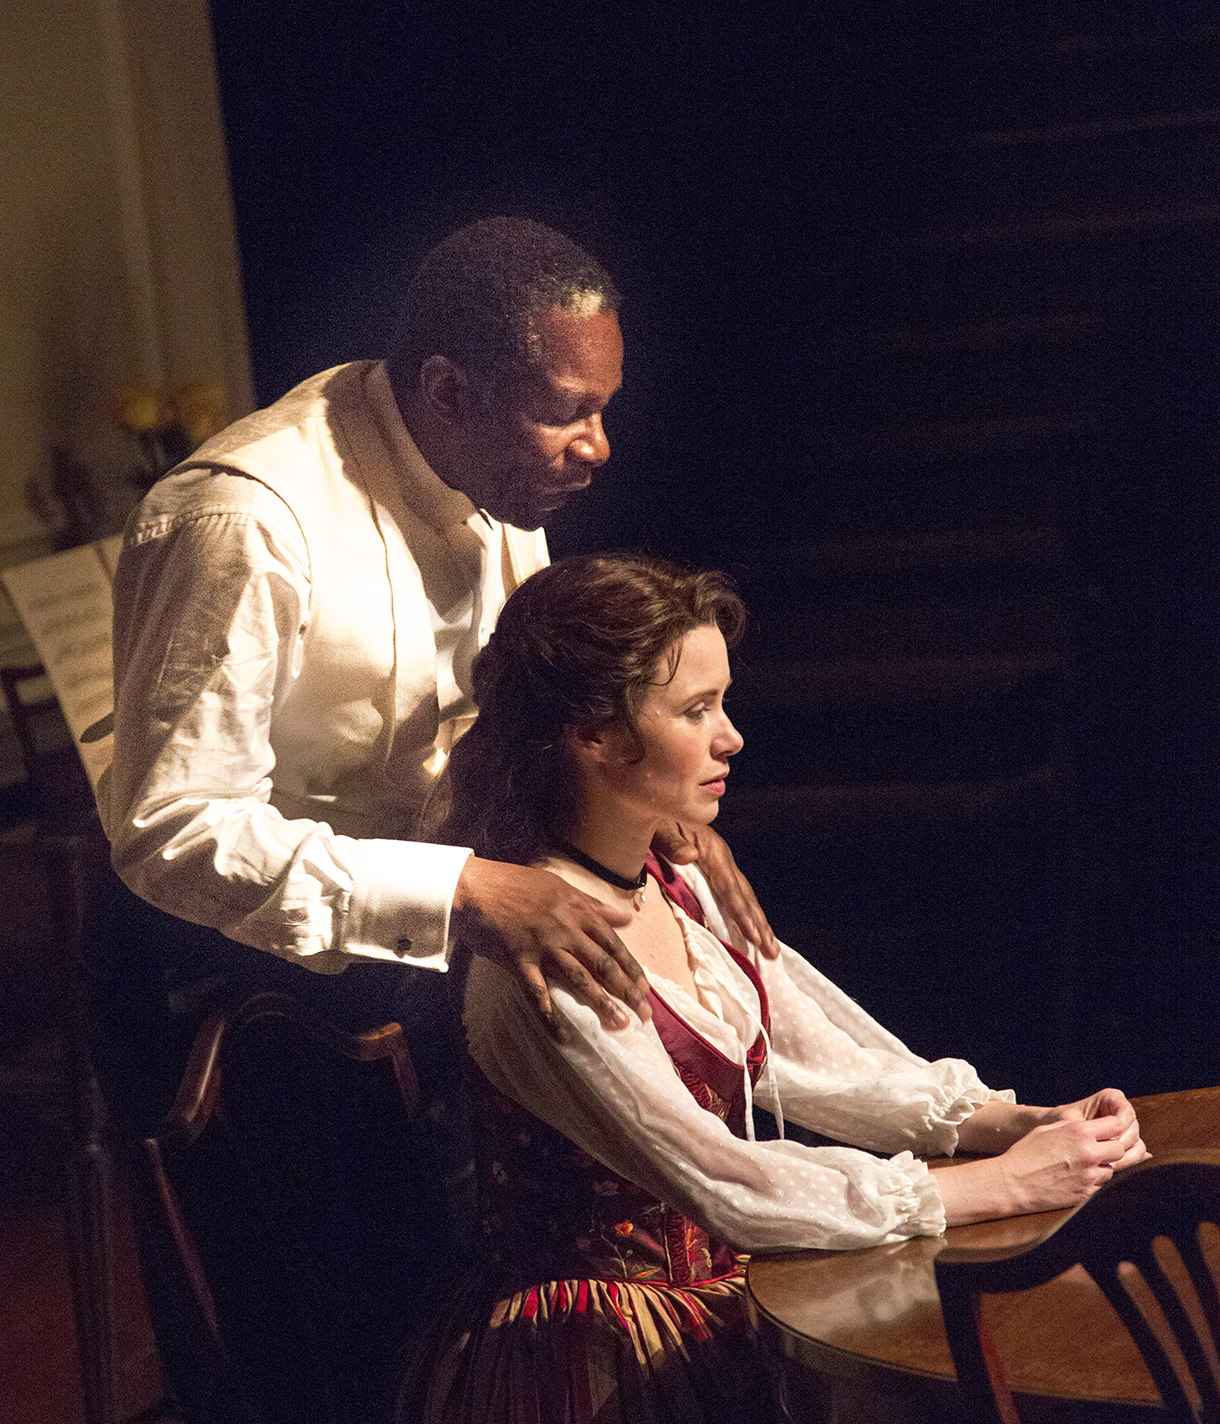 ibsen strindberg and their acolytes a retrospective new york arts john douglas thompson and maggie lacey in a doll s house photo henry grossman